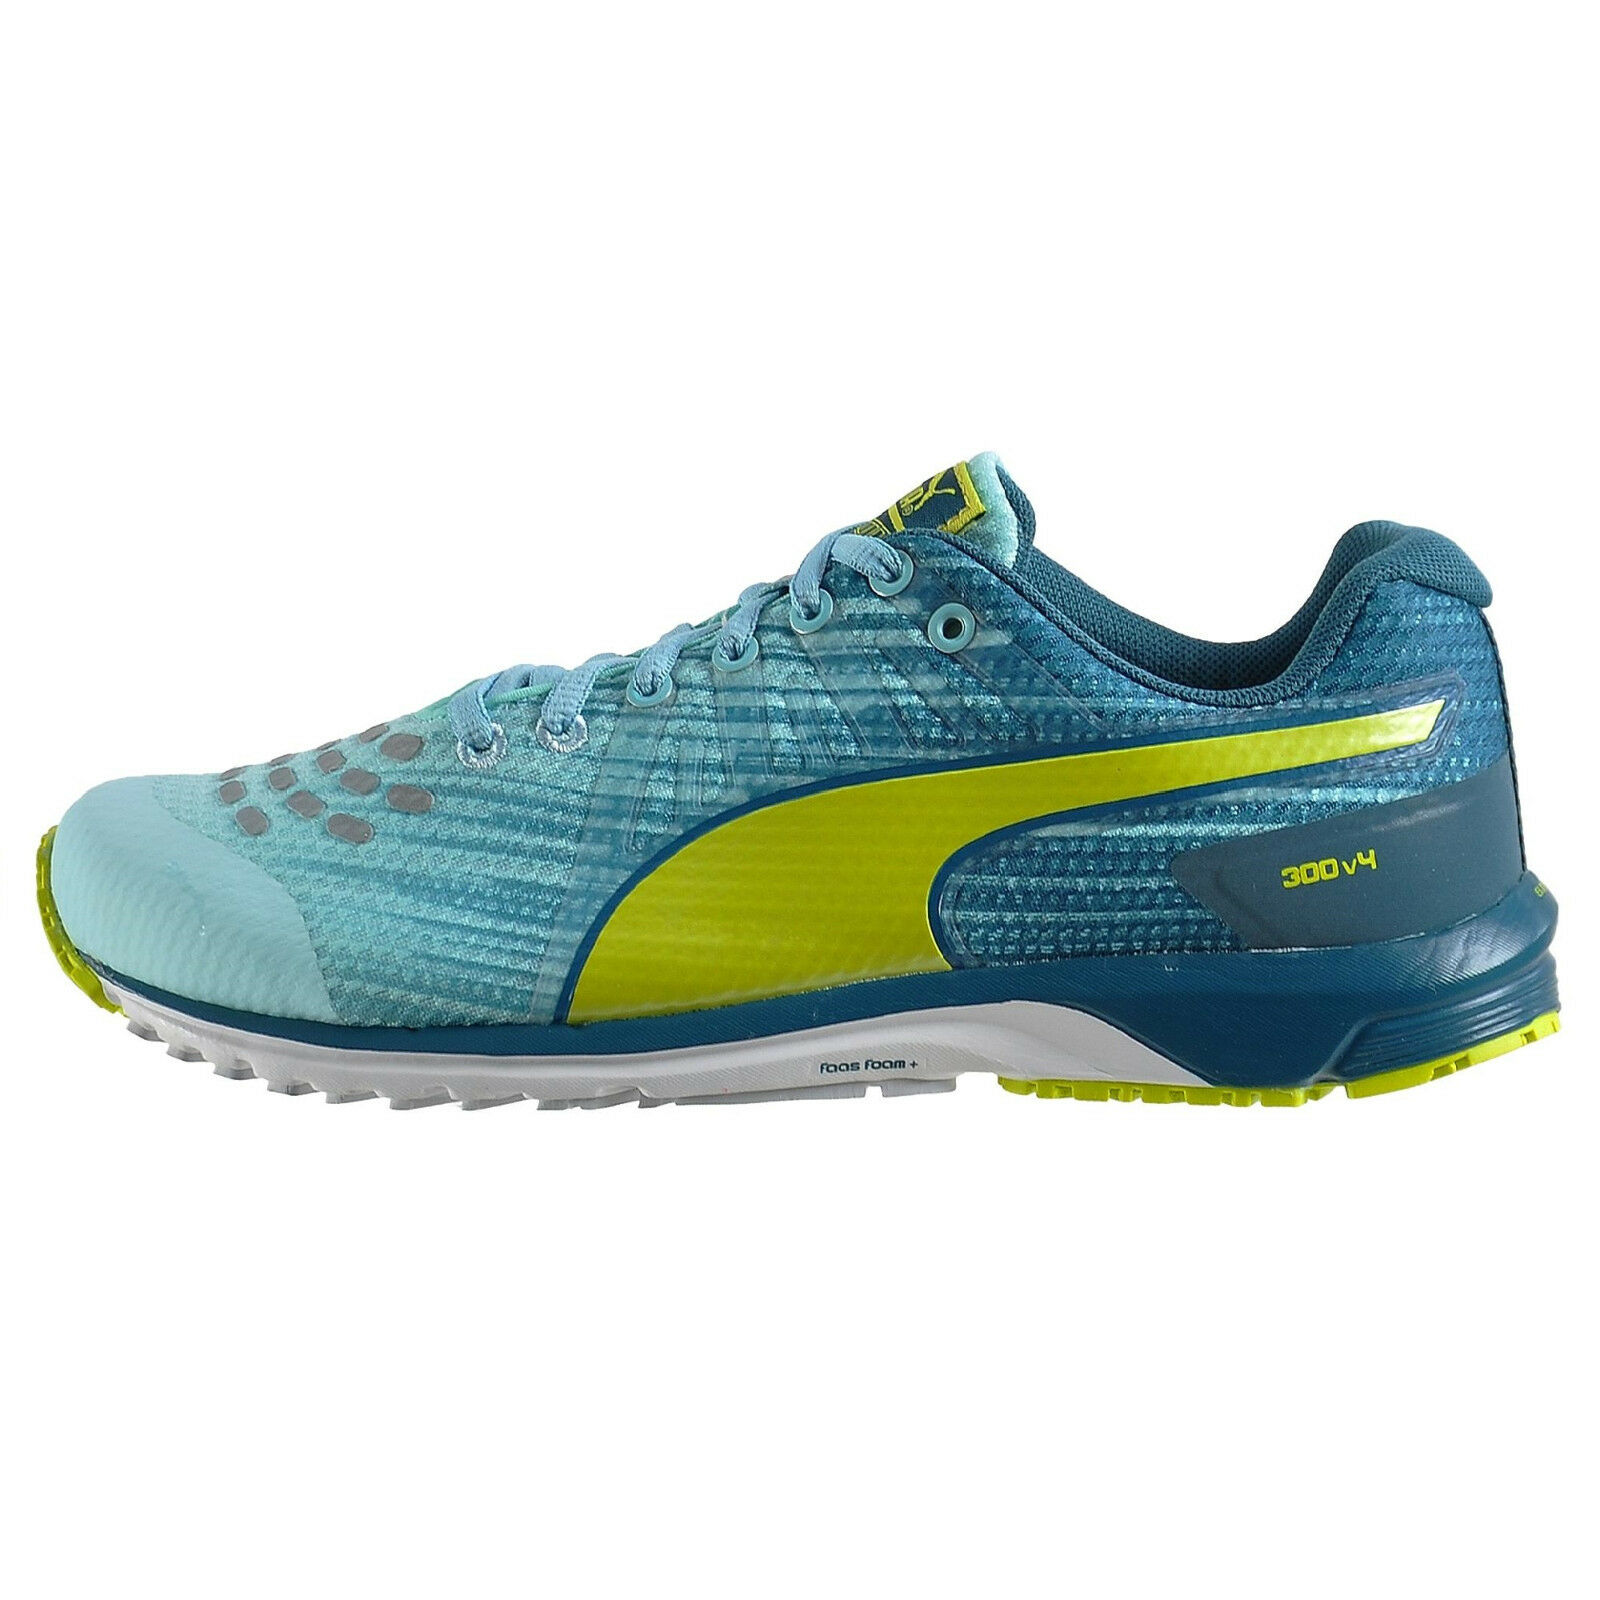 PUMA FAAS 300 V4 WN'S - Zapatillas de running para mujer, color turquesa Cheap and beautiful fashion